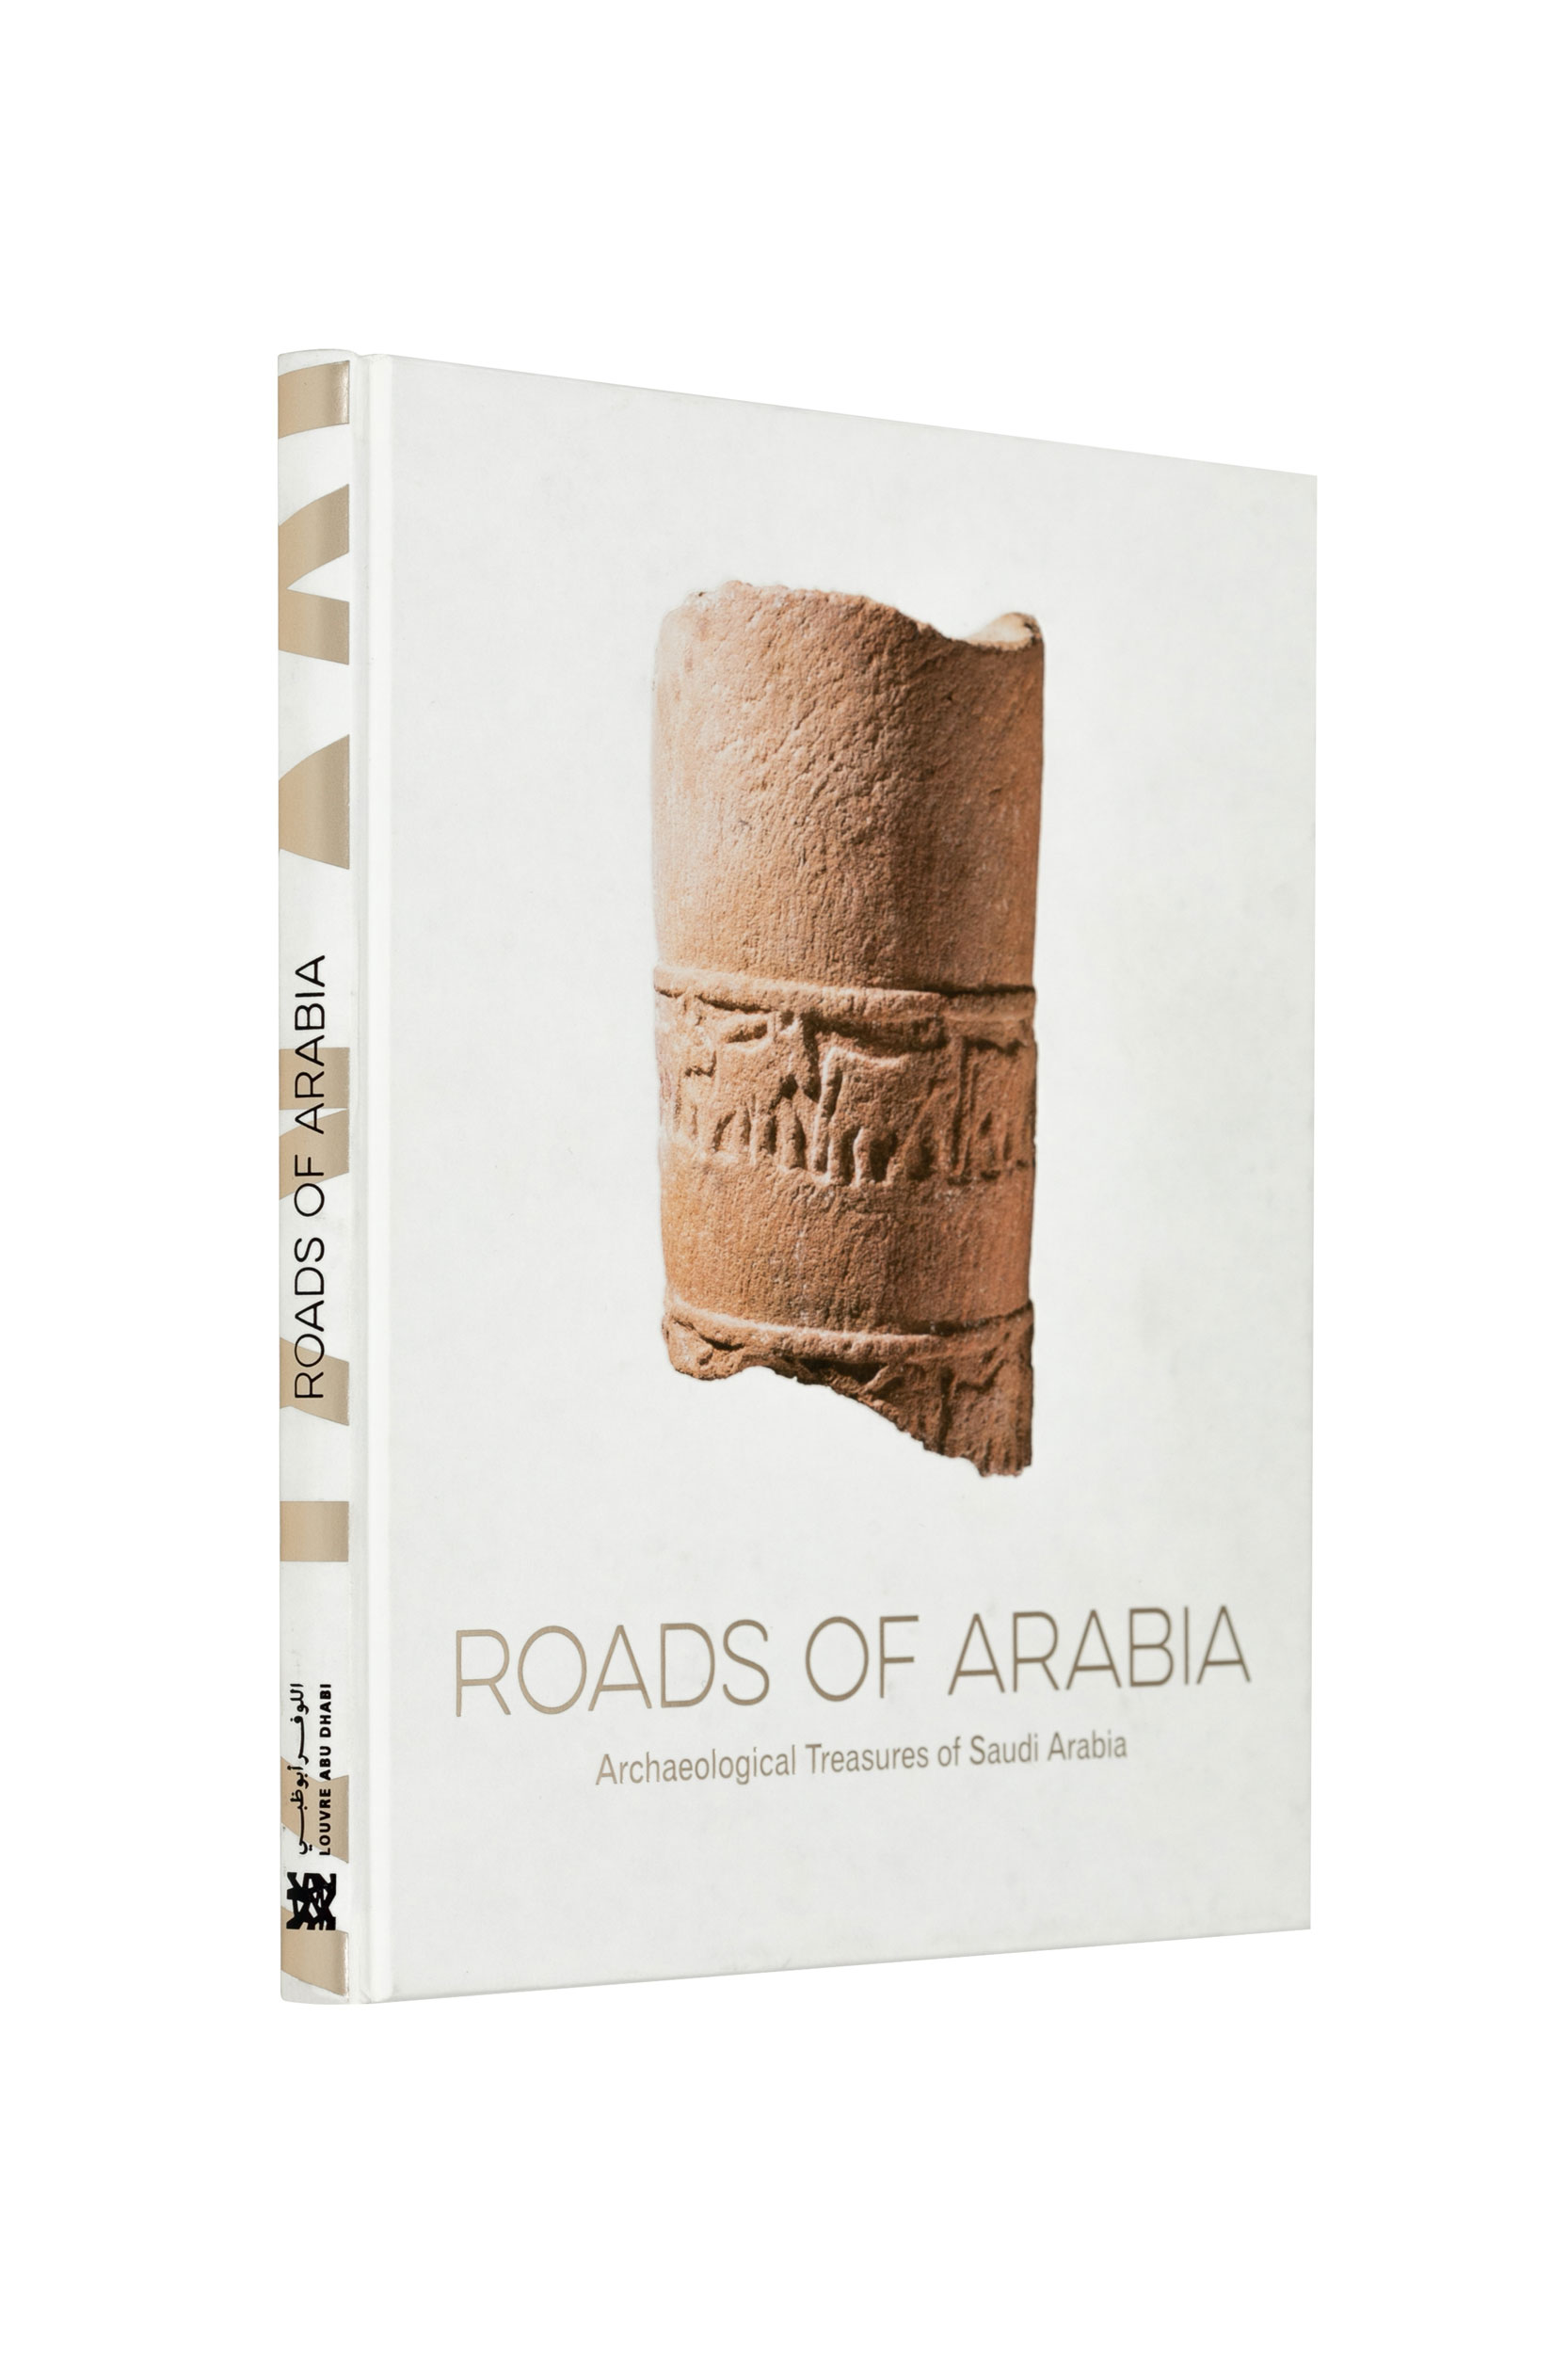 Roads of Arabia: Archaeological Treasures of Saudi Arabia